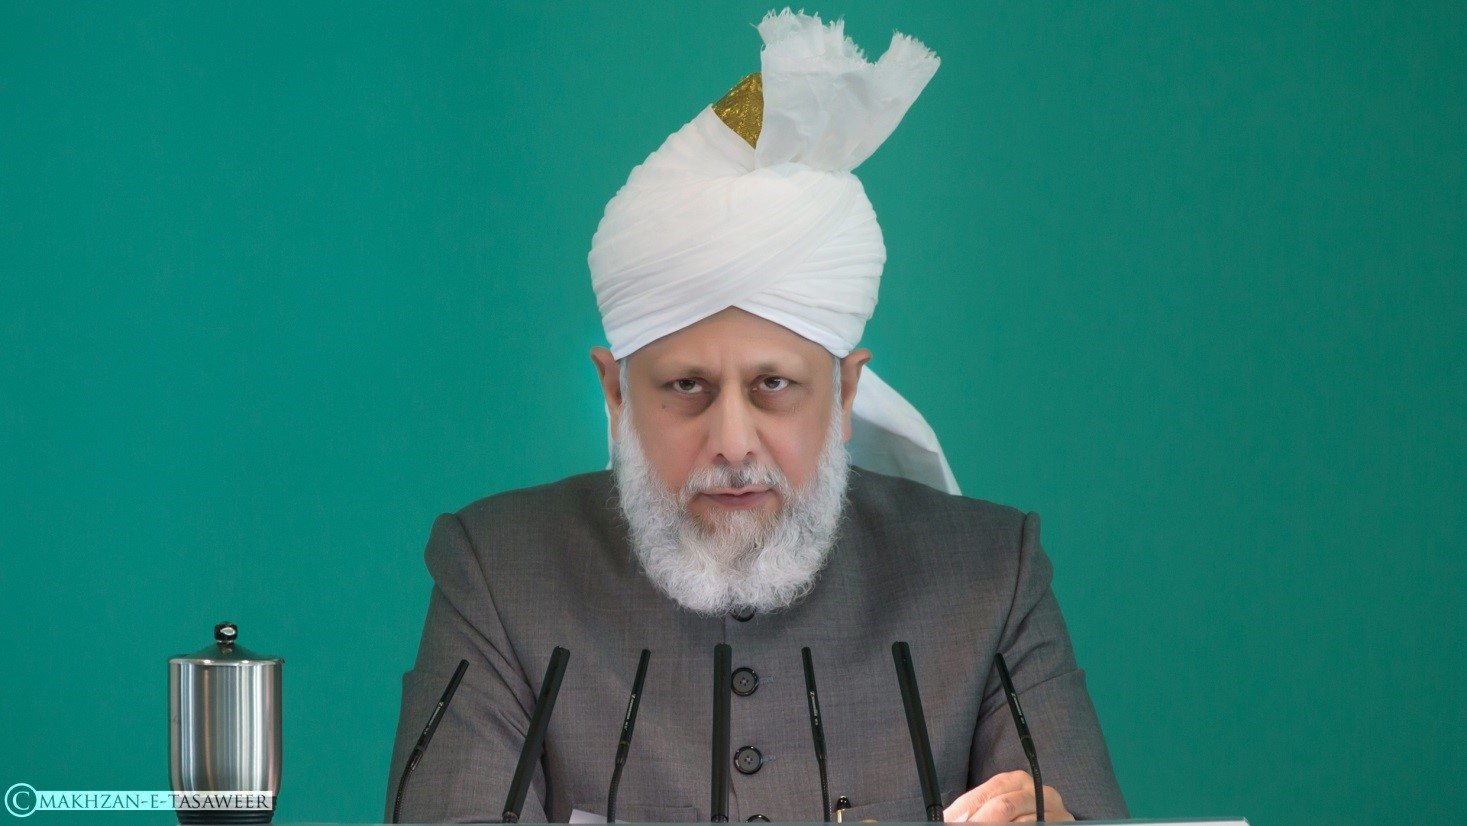 Head of Ahmadiyya Muslim Community condemns terror attacks in Europe and calls for peace in the world